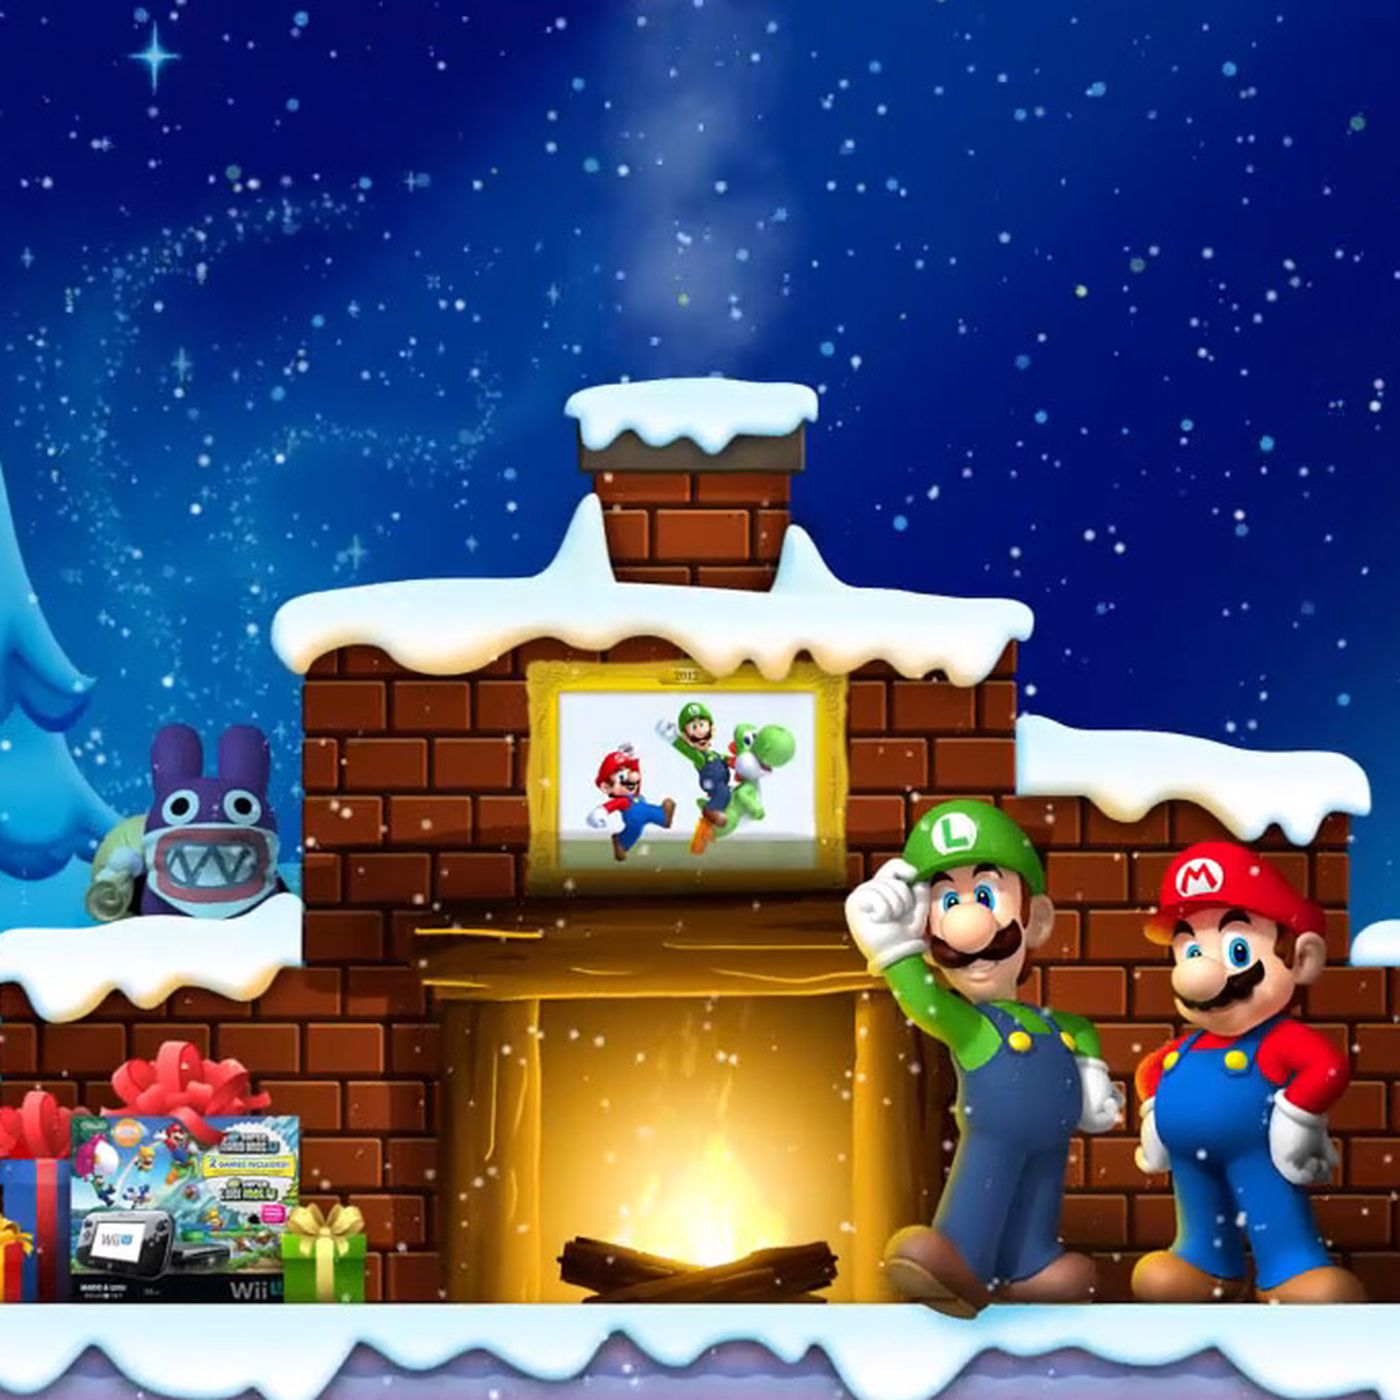 Nintendo wishes you a happy holidays with the Brothers Mario - Polygon